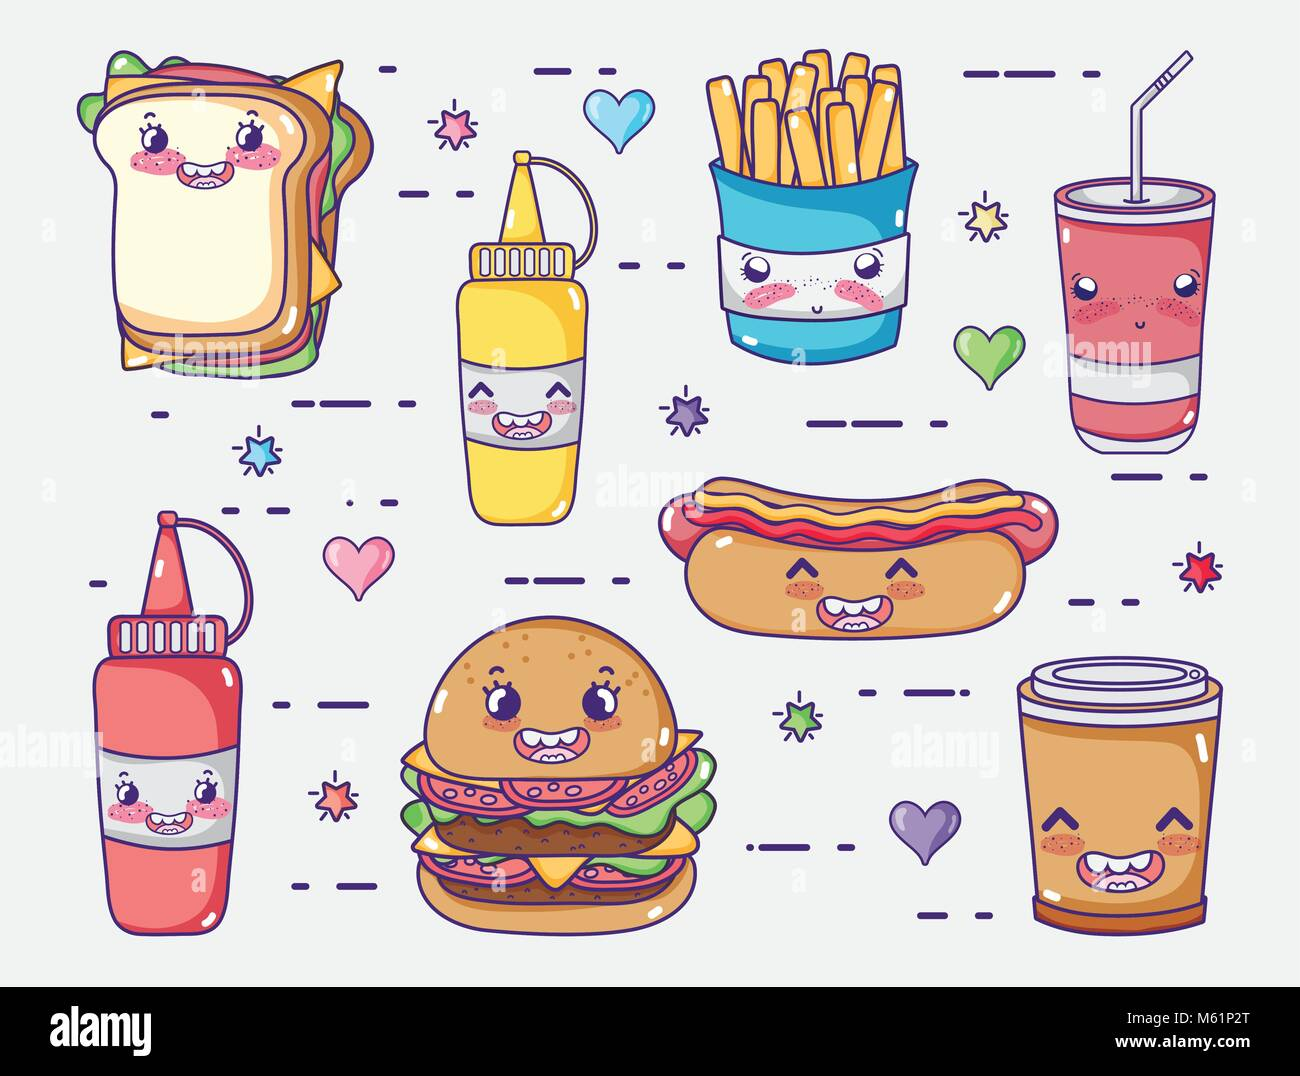 Kawaii Burger Fast Food Icon High Resolution Stock Photography And Images Alamy